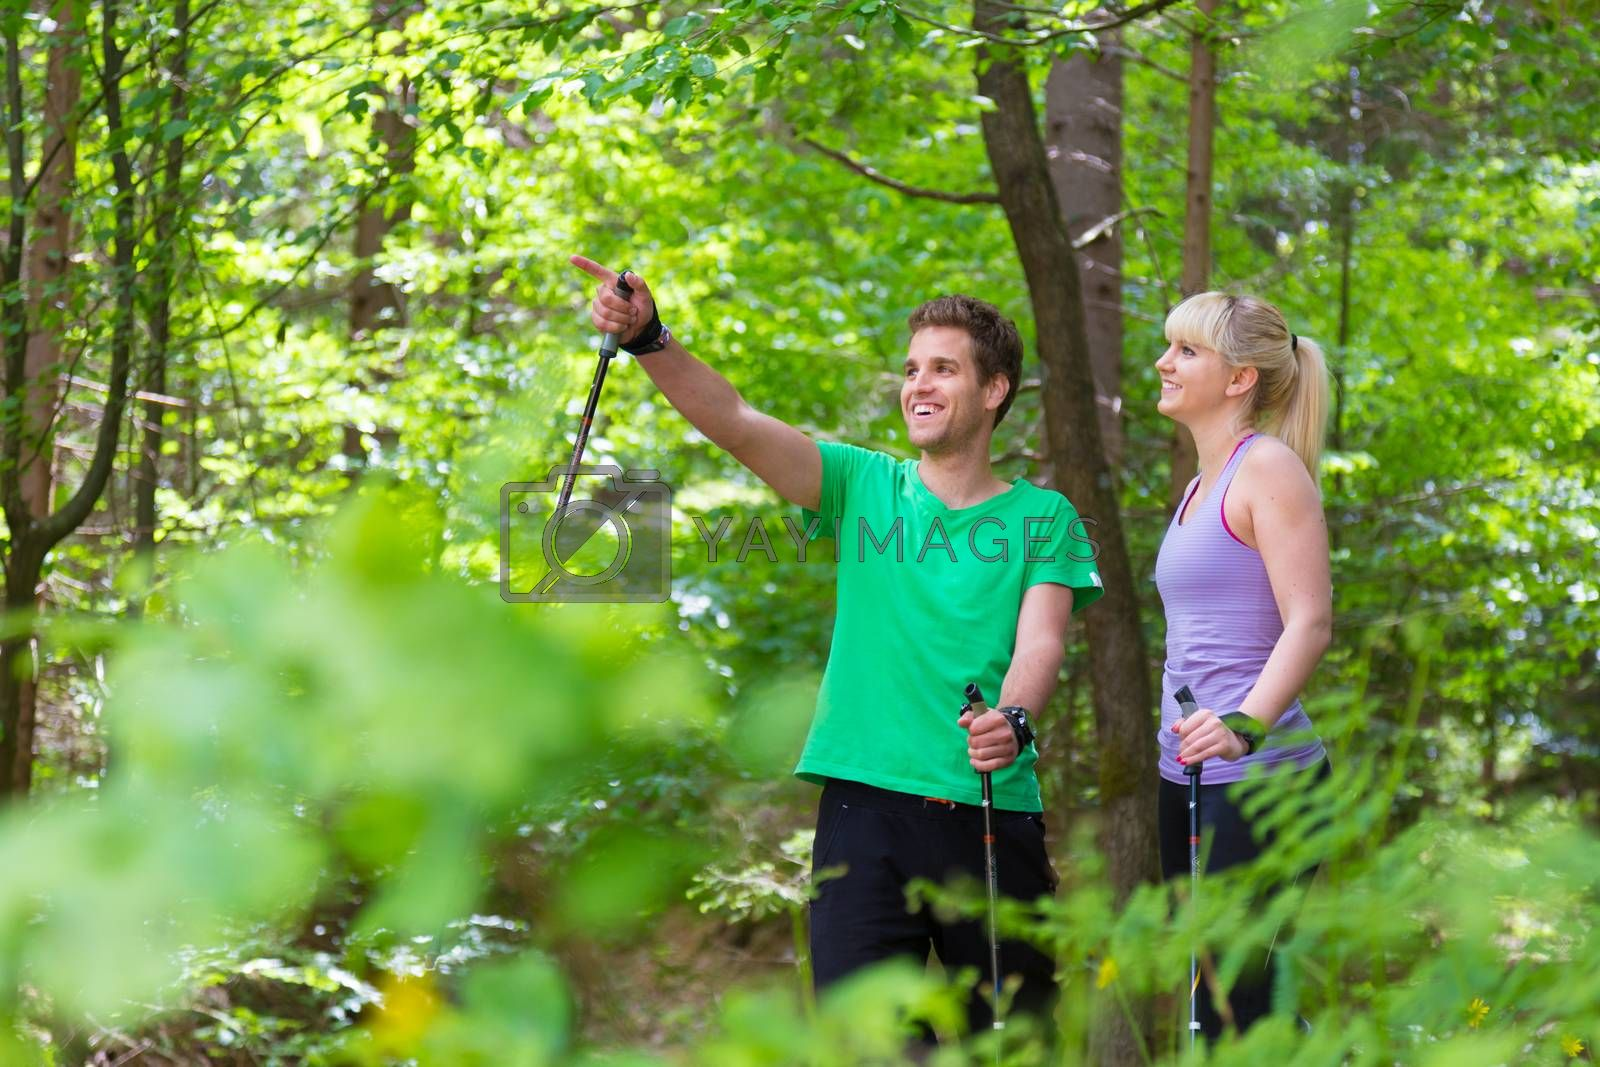 Young spoty active cople with hiking sticks walking in nature. Active lifestyle. Activities and recreation outdoors.